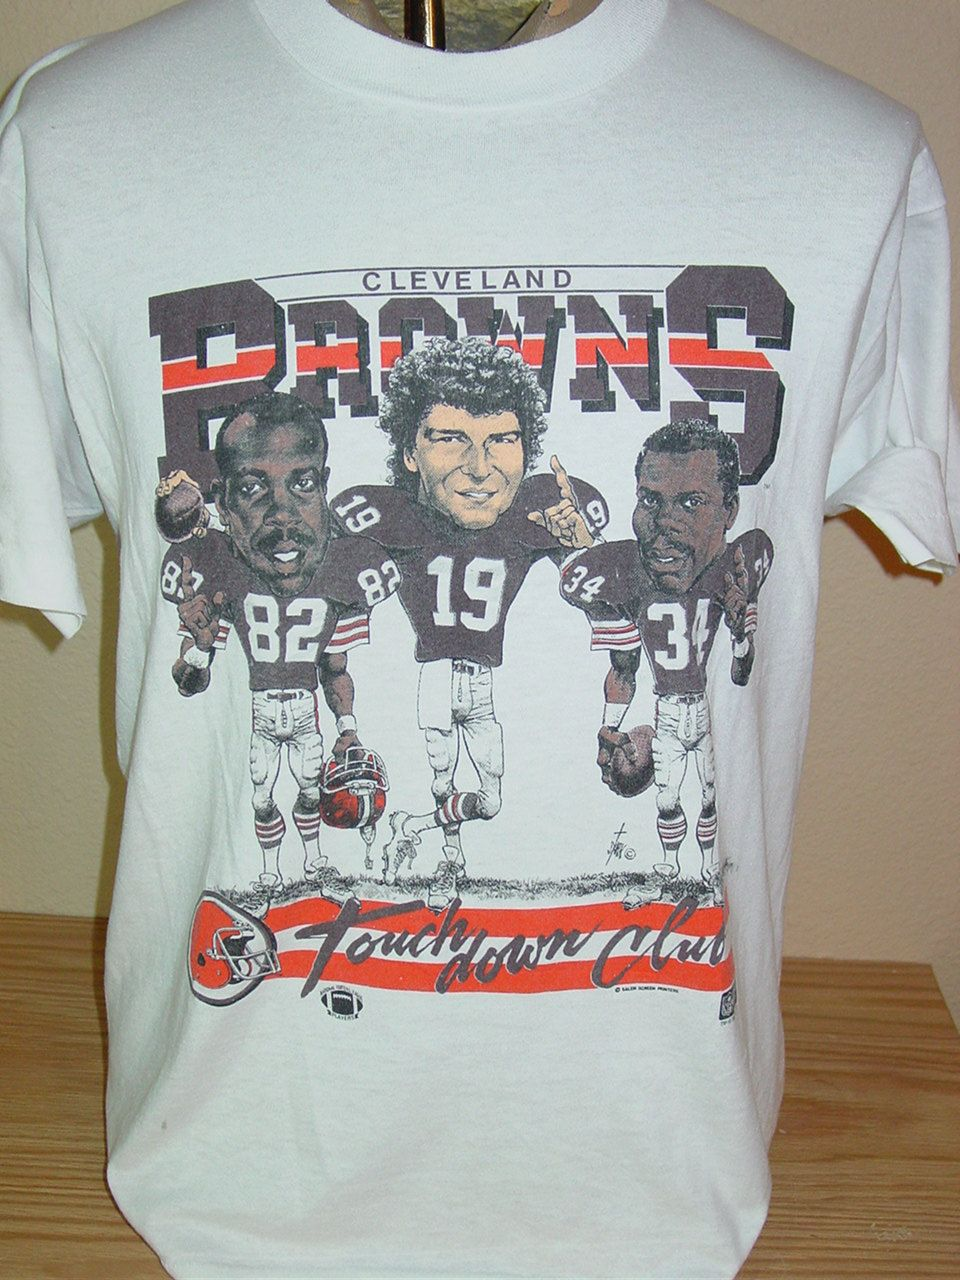 2d7a89a84be vintage 1980s Cleveland Browns Bernie Kosar cartoon football t shirt Large  by vintagerhino247 on Etsy